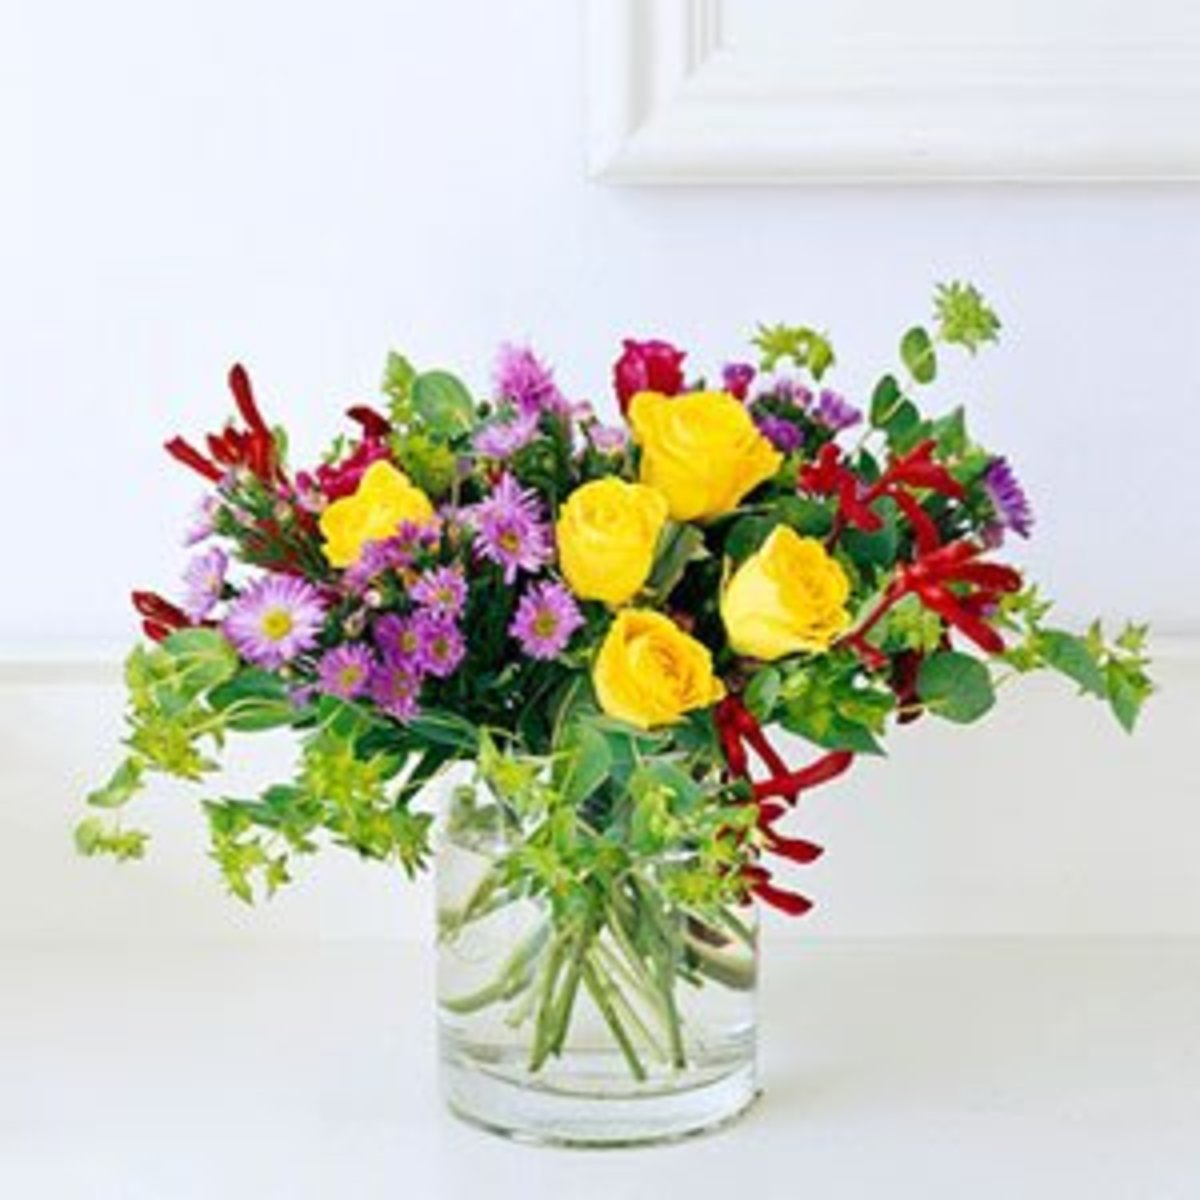 Flower Arranging Instructions